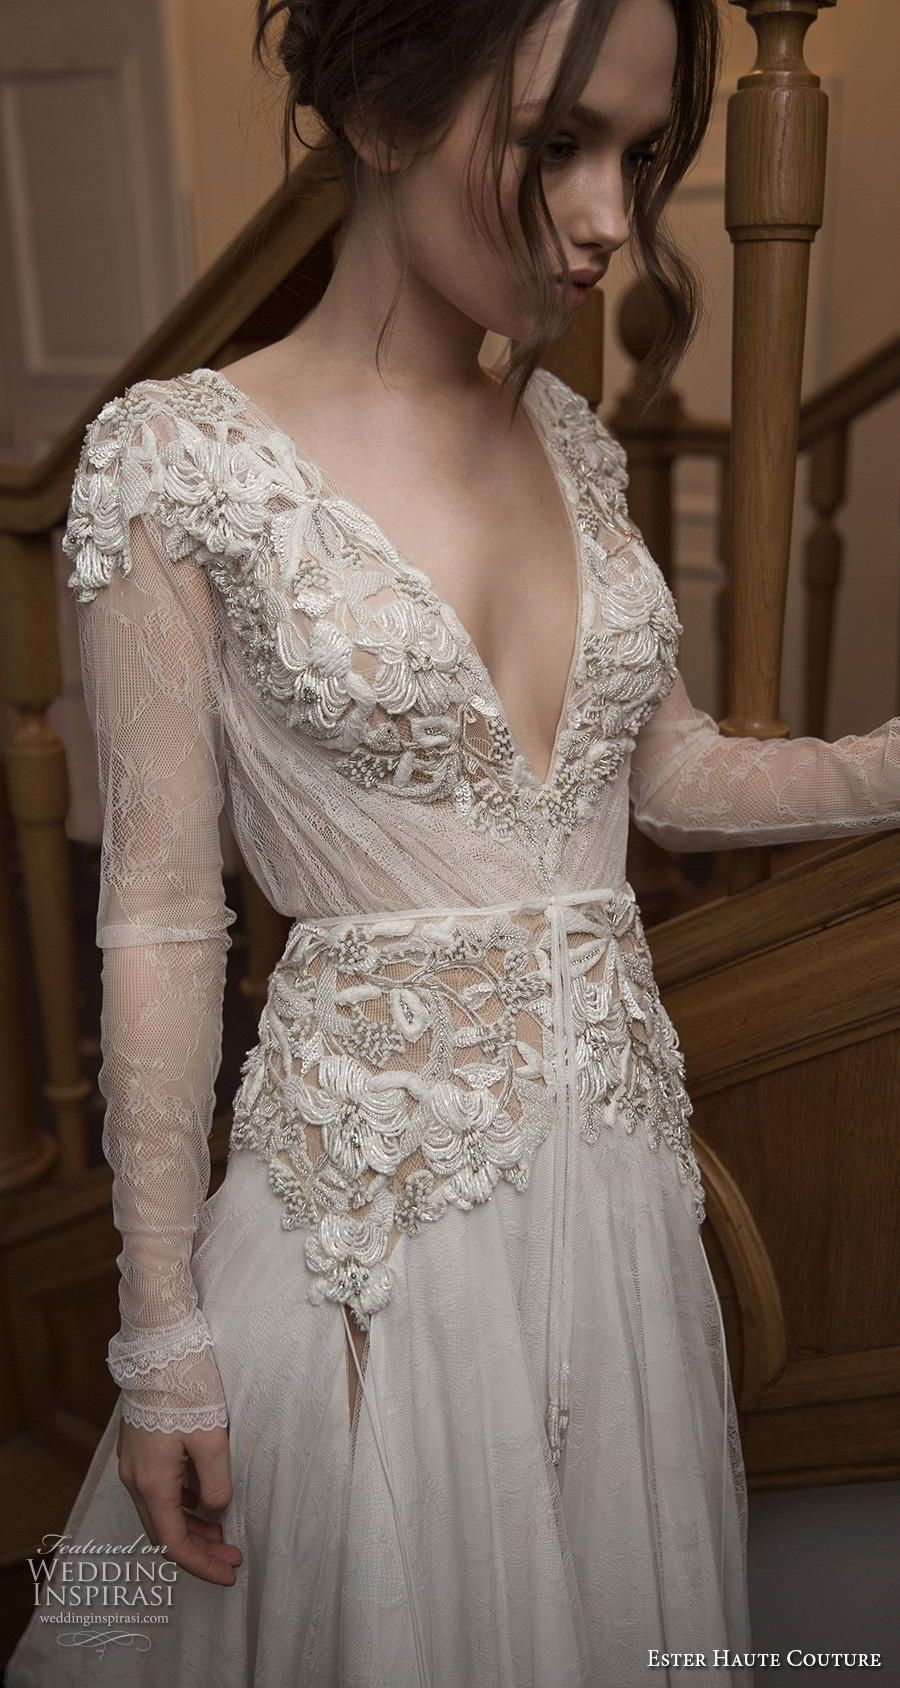 Ester Haute Couture 2018 2019 Wedding Dresses Wedding Inspirasi Wedding Dress Couture Couture Wedding Gowns Wedding Gown Lace Sleeves